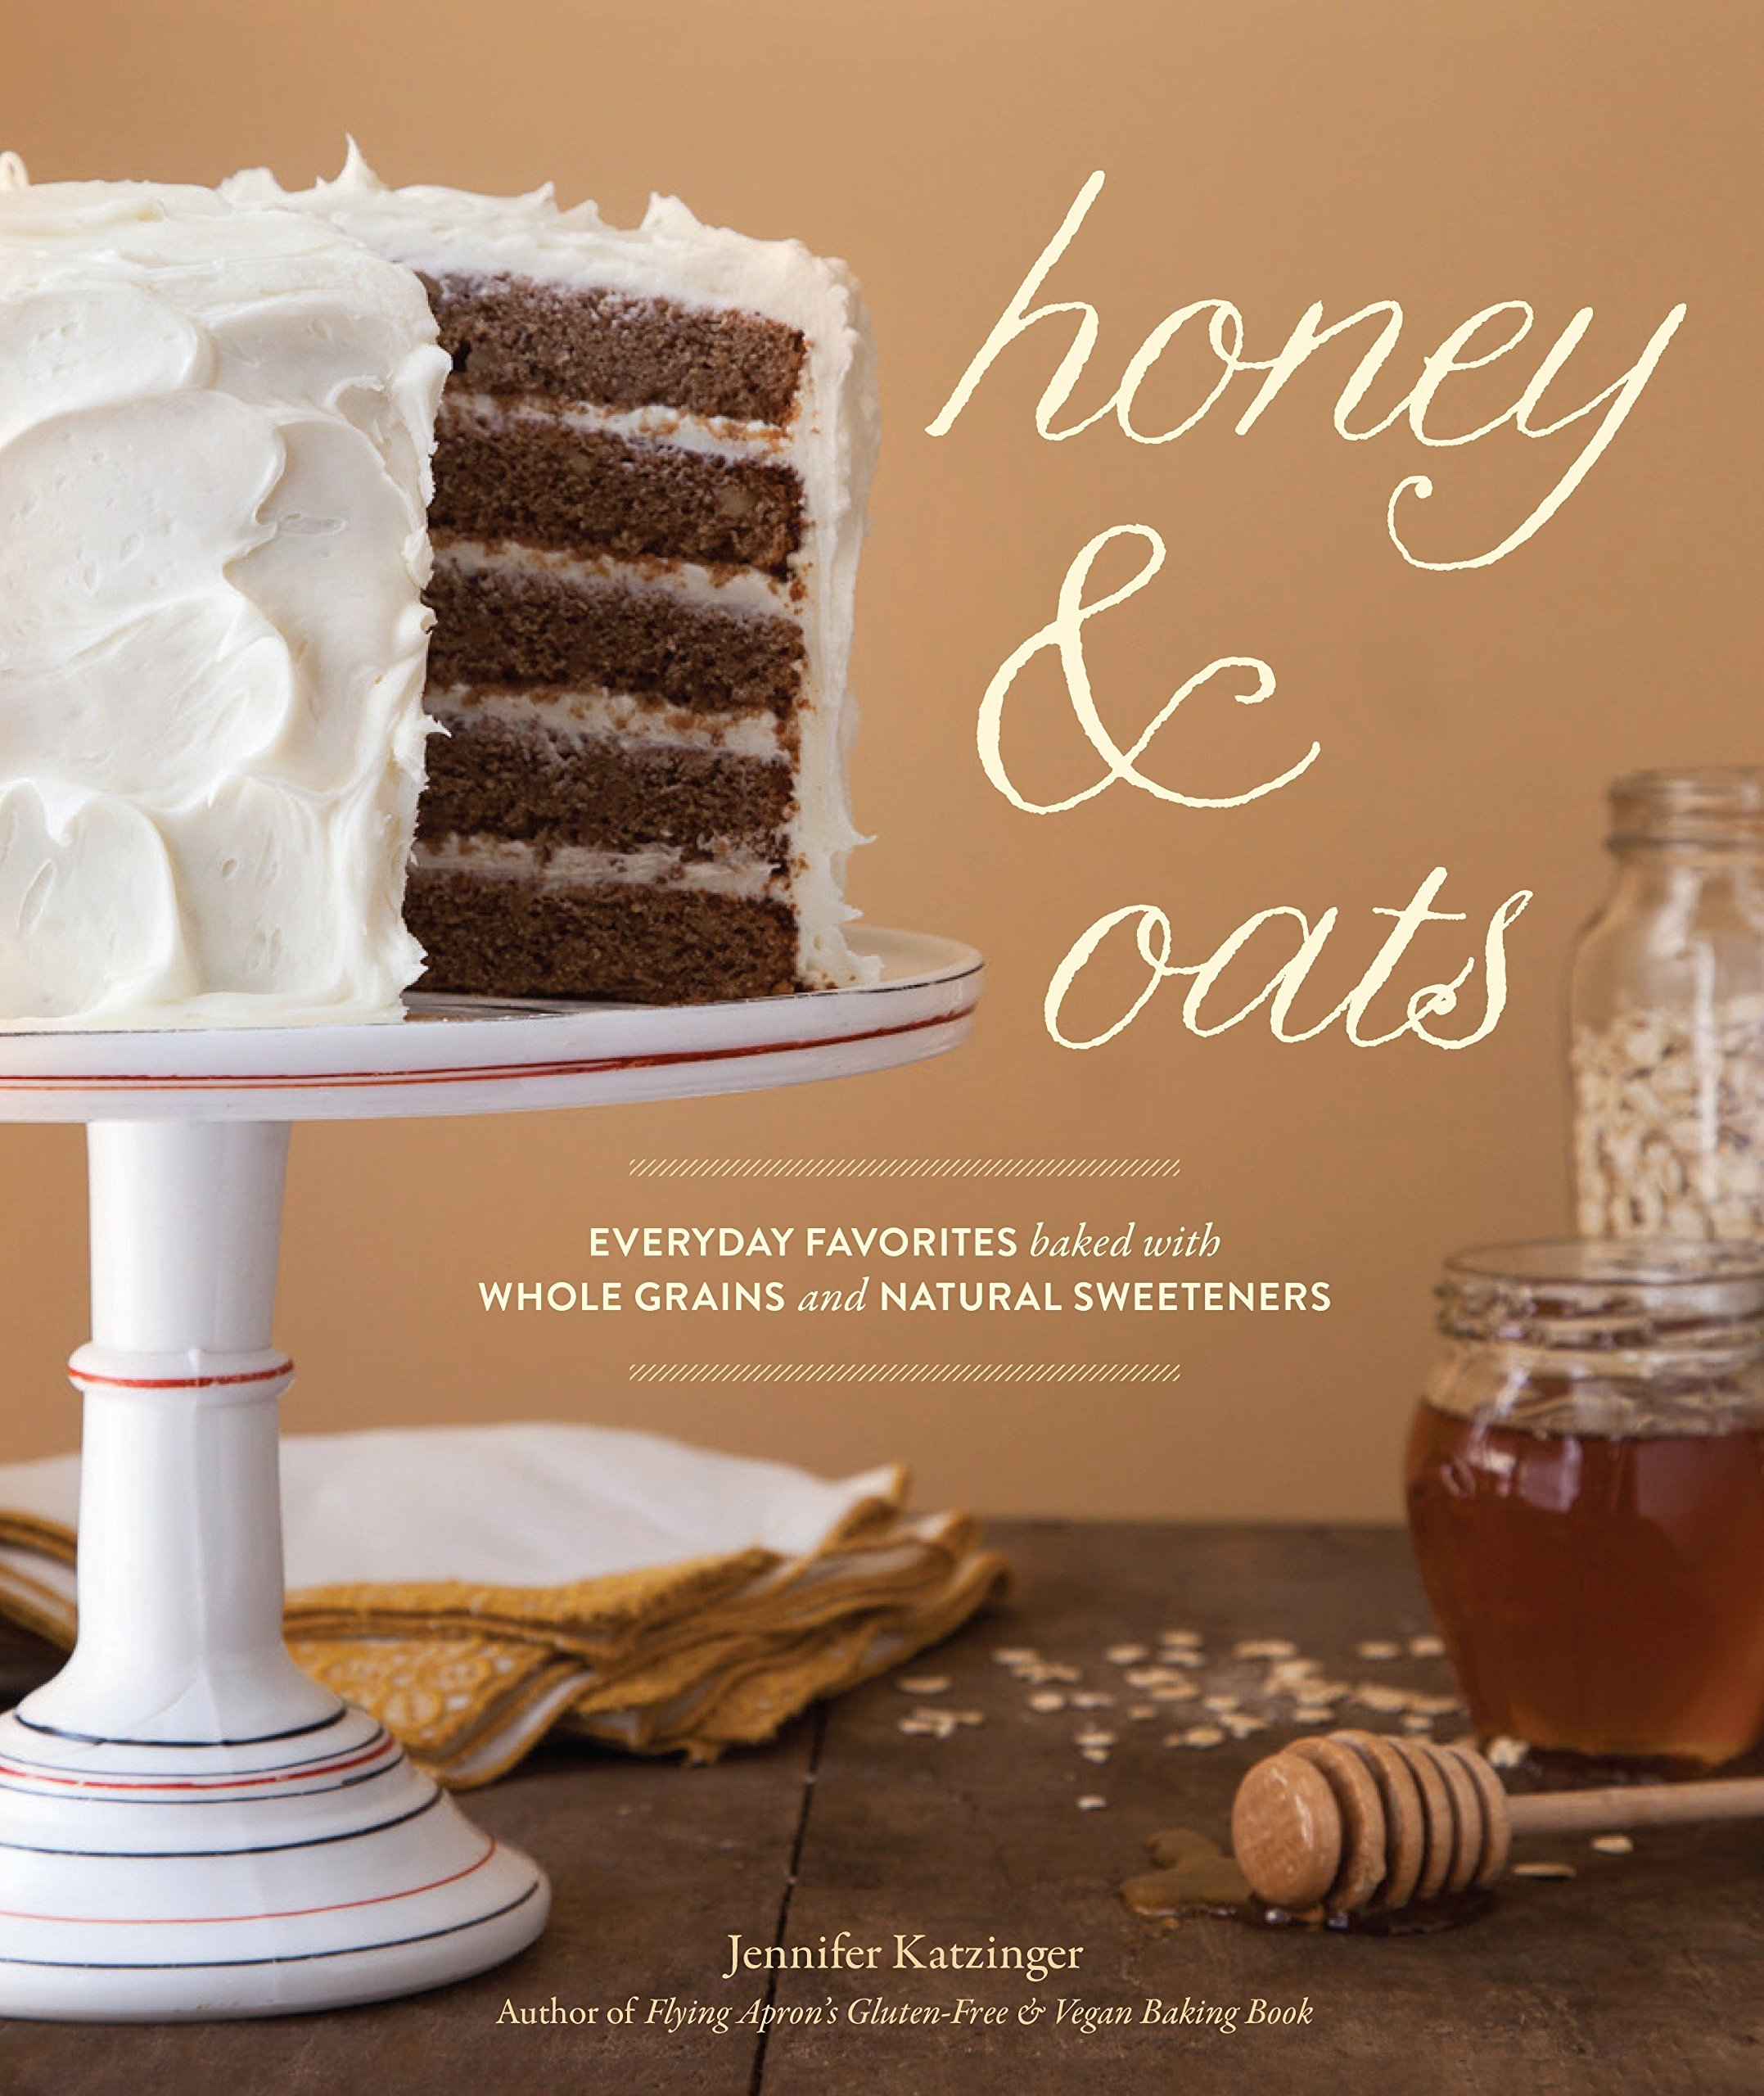 Honey & Oats: Everyday Favorites Baked with Whole Grains and Natural Sweeteners by Sasquatch Books